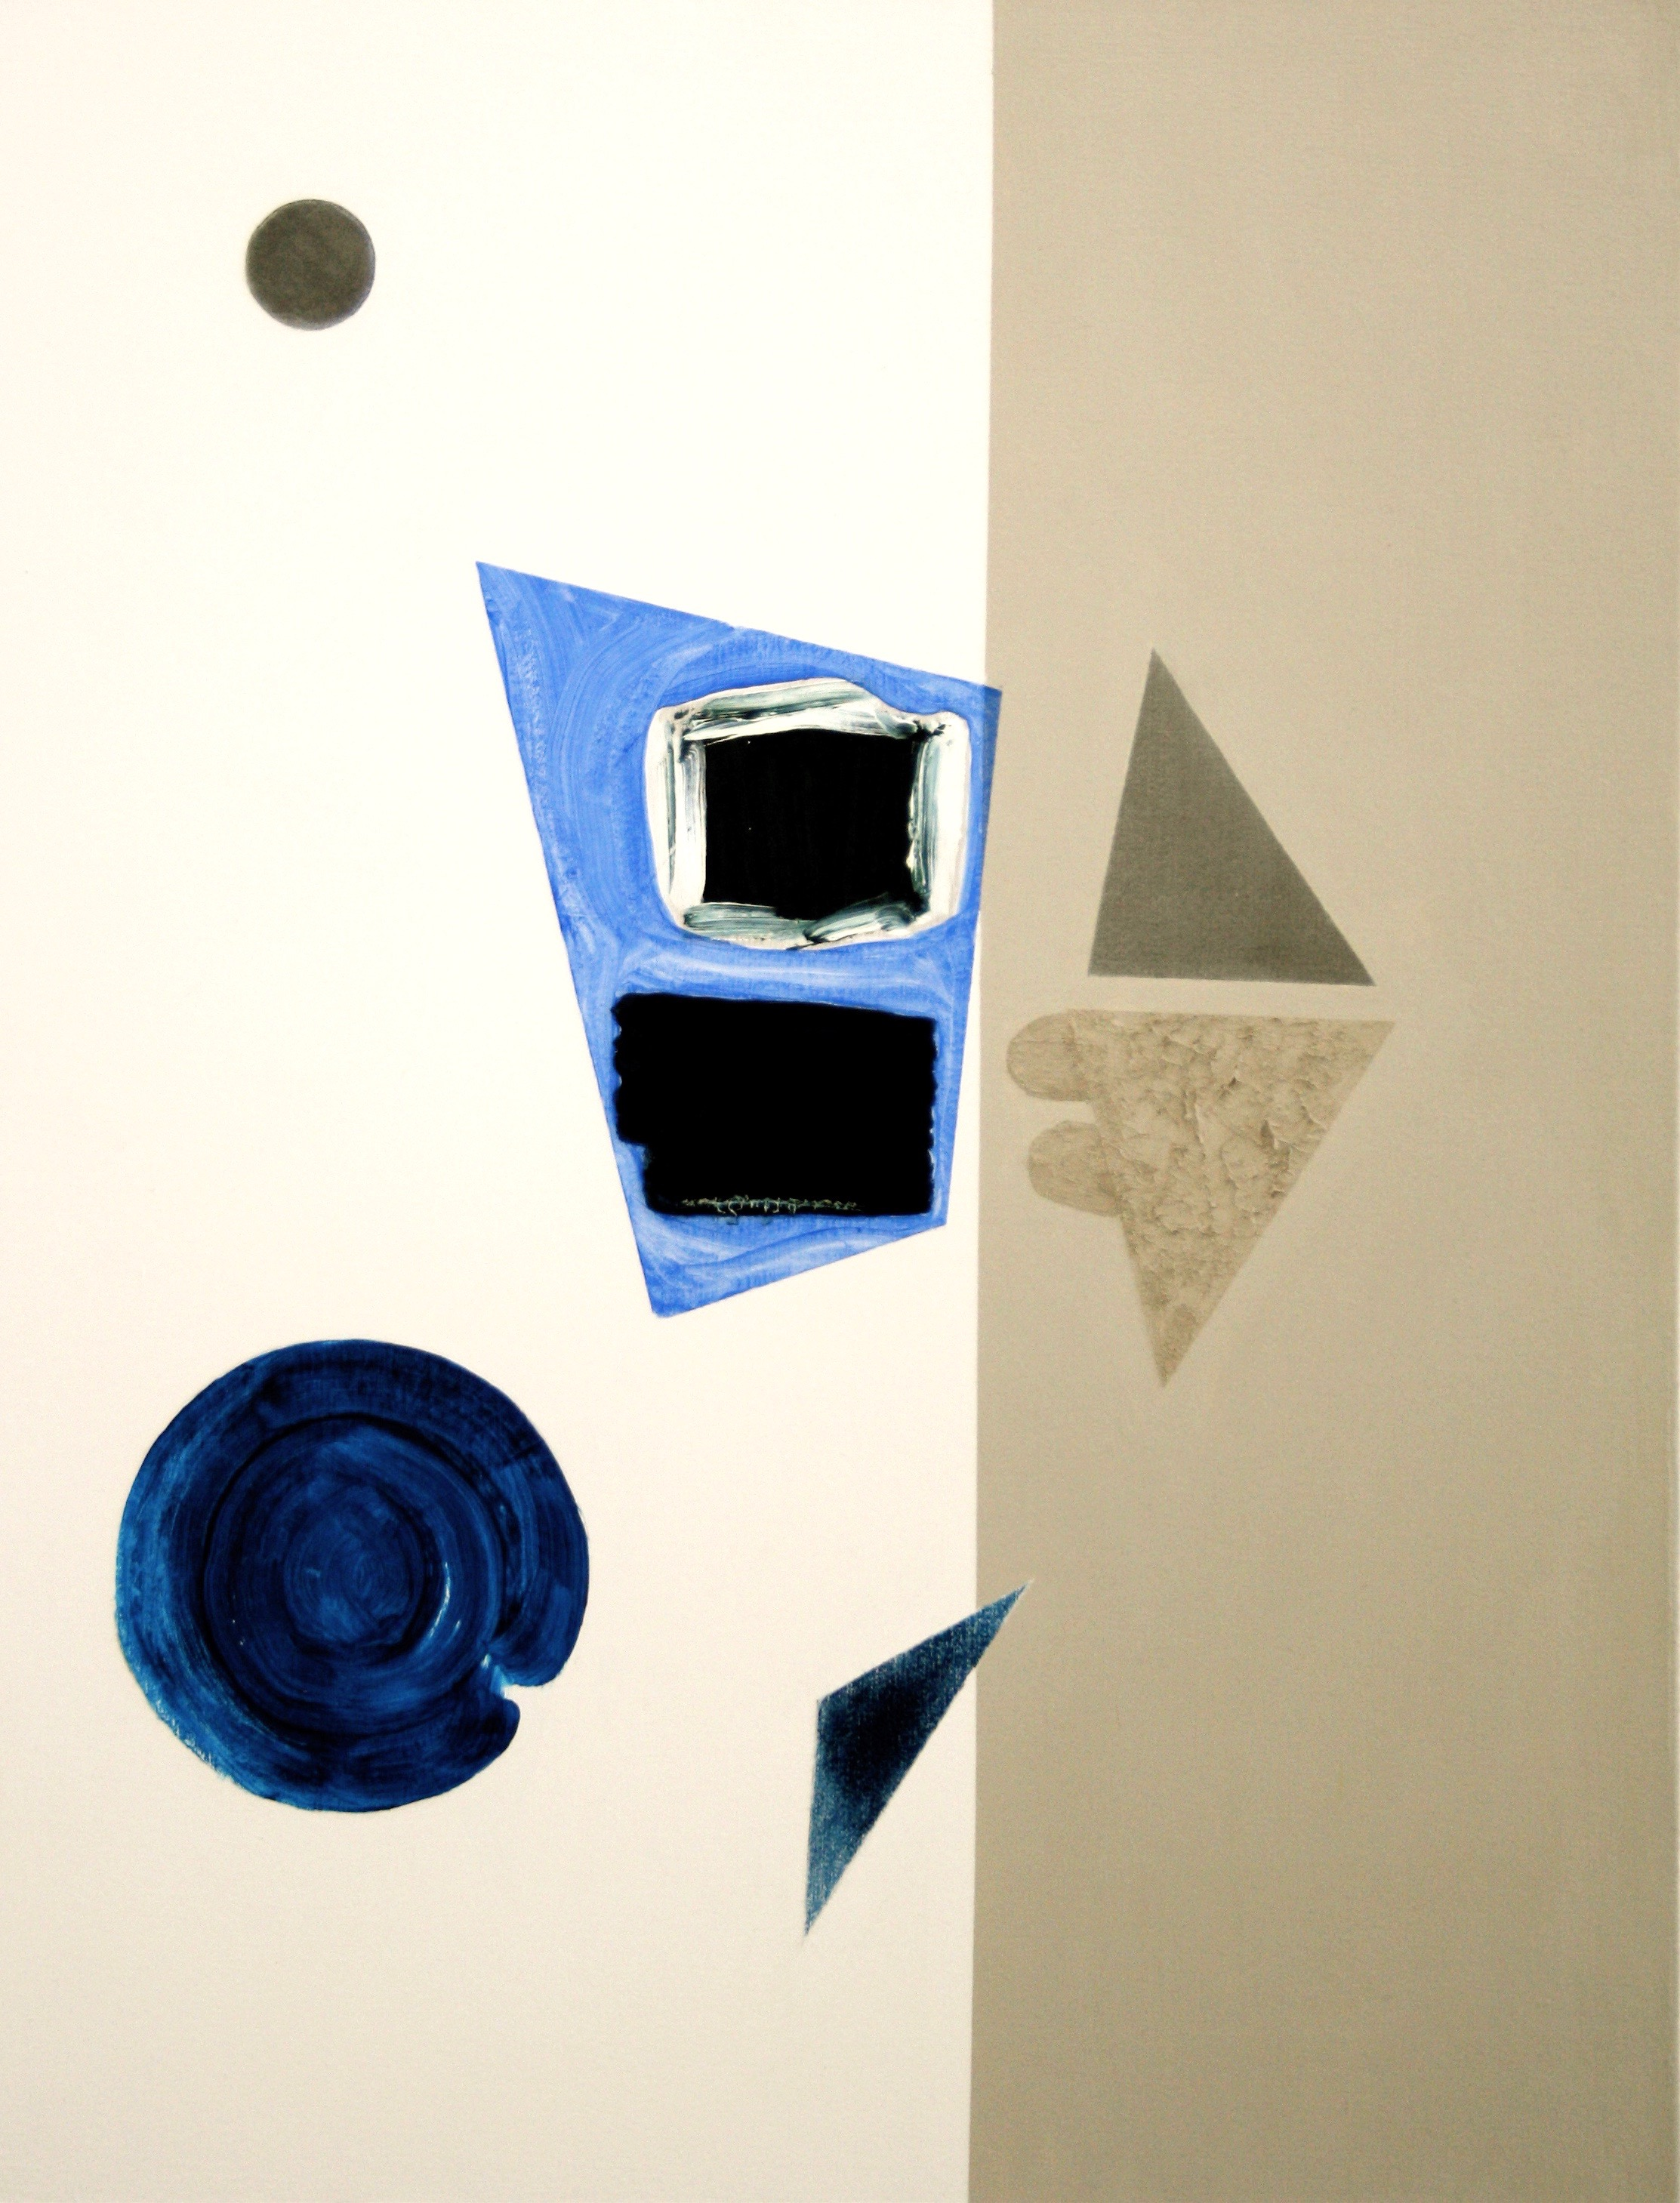 Degrees of Separation 4, 2010, oil, acrylic and graphite on canvas, 56 x 43 cm